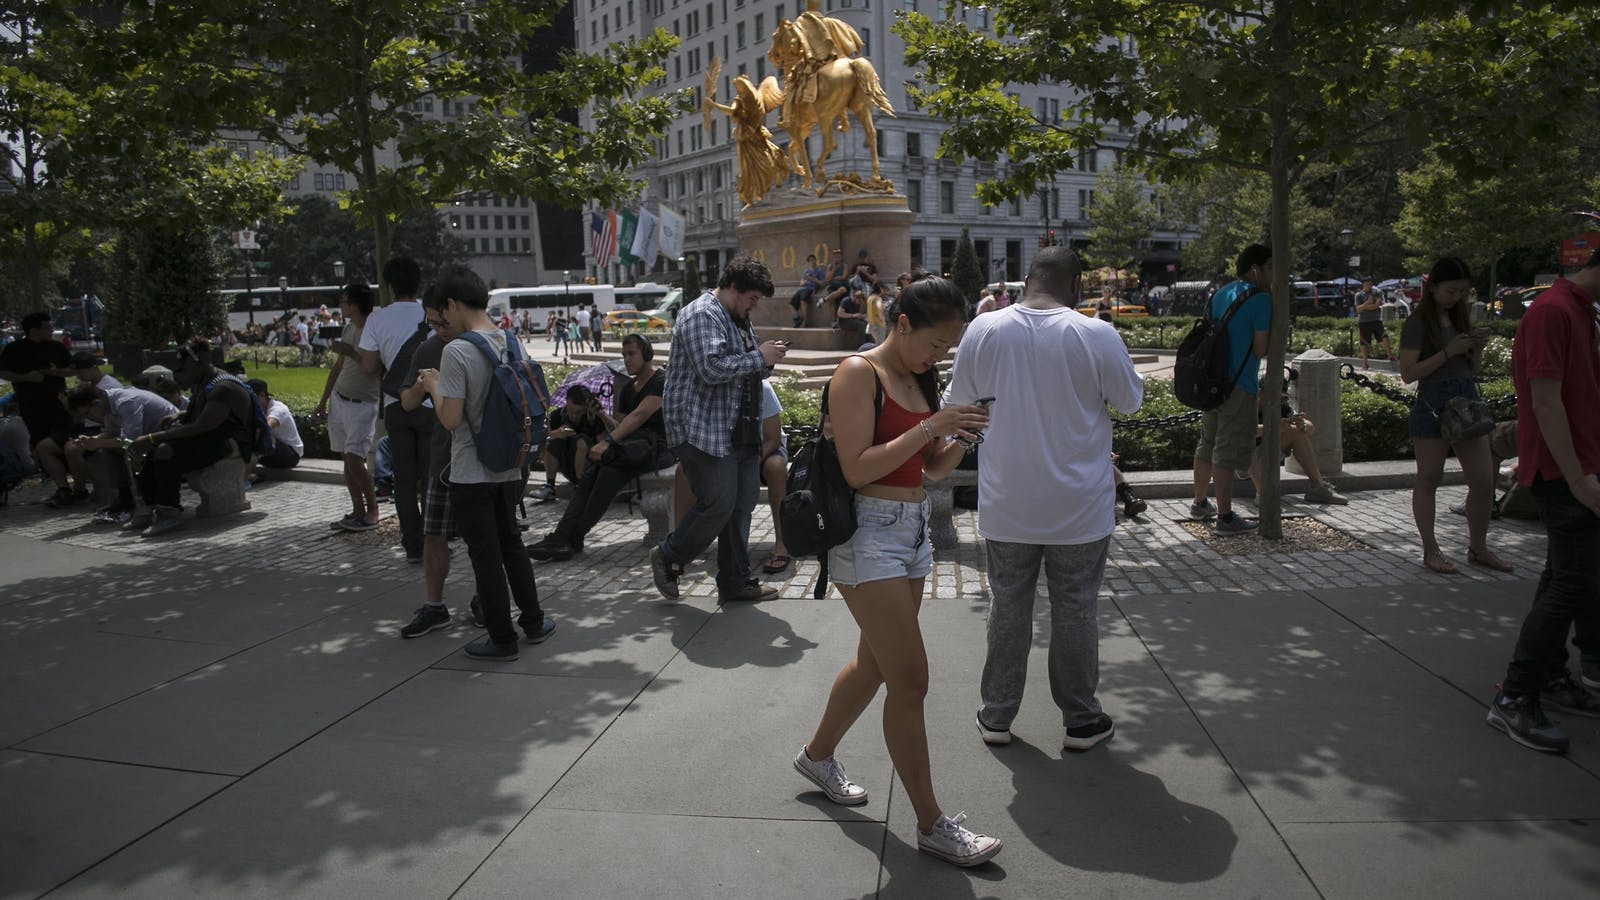 People playing Pokemon Go in New York City this week. Photo by Bloomberg.